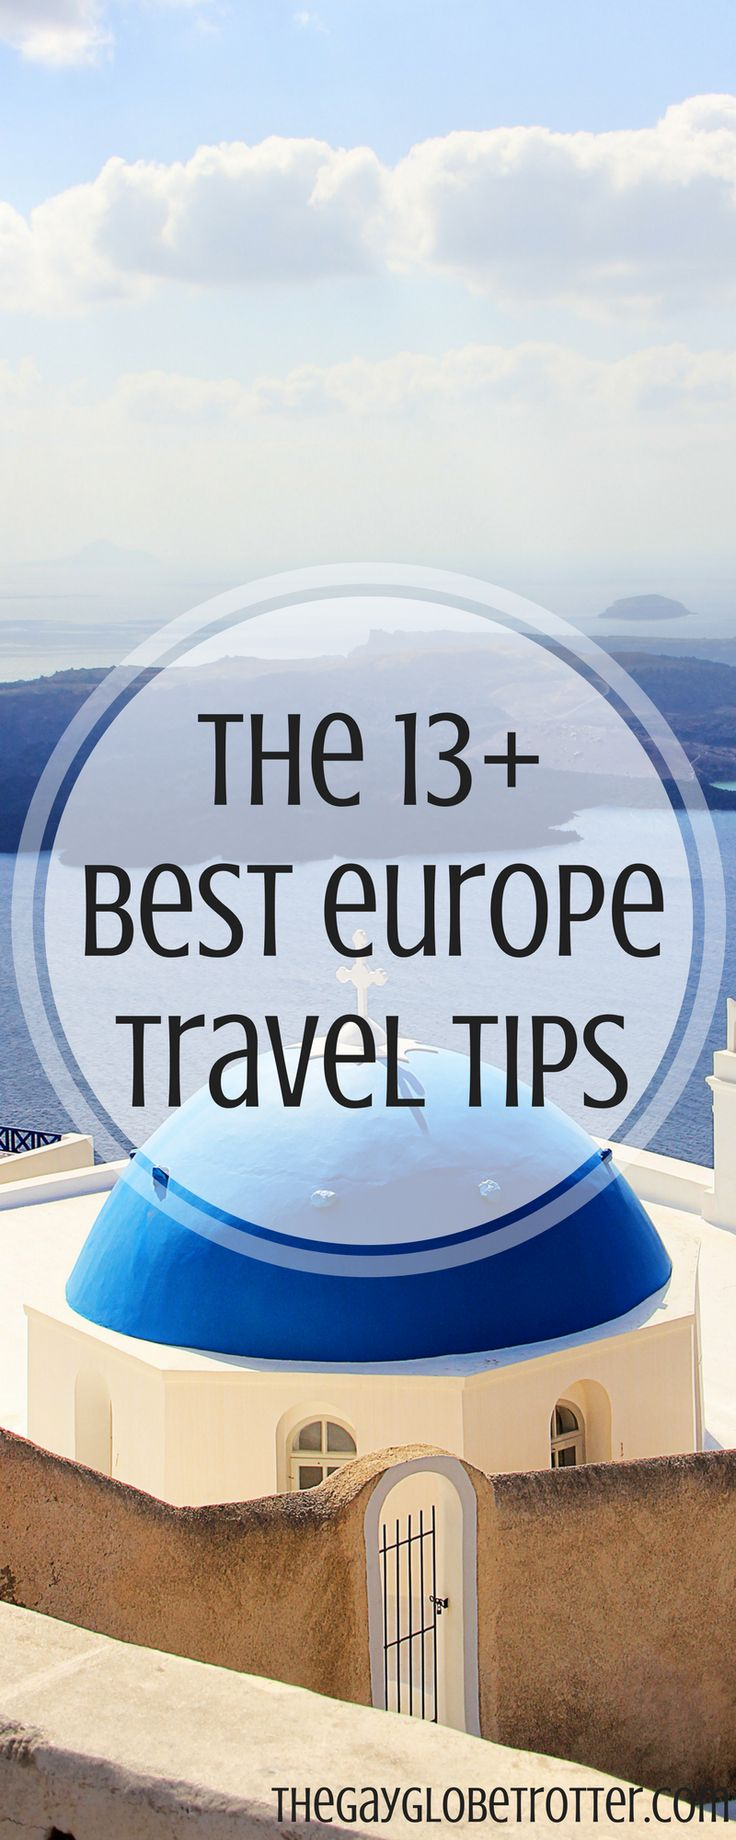 These Europe travel tips will help you plan your European vacation!